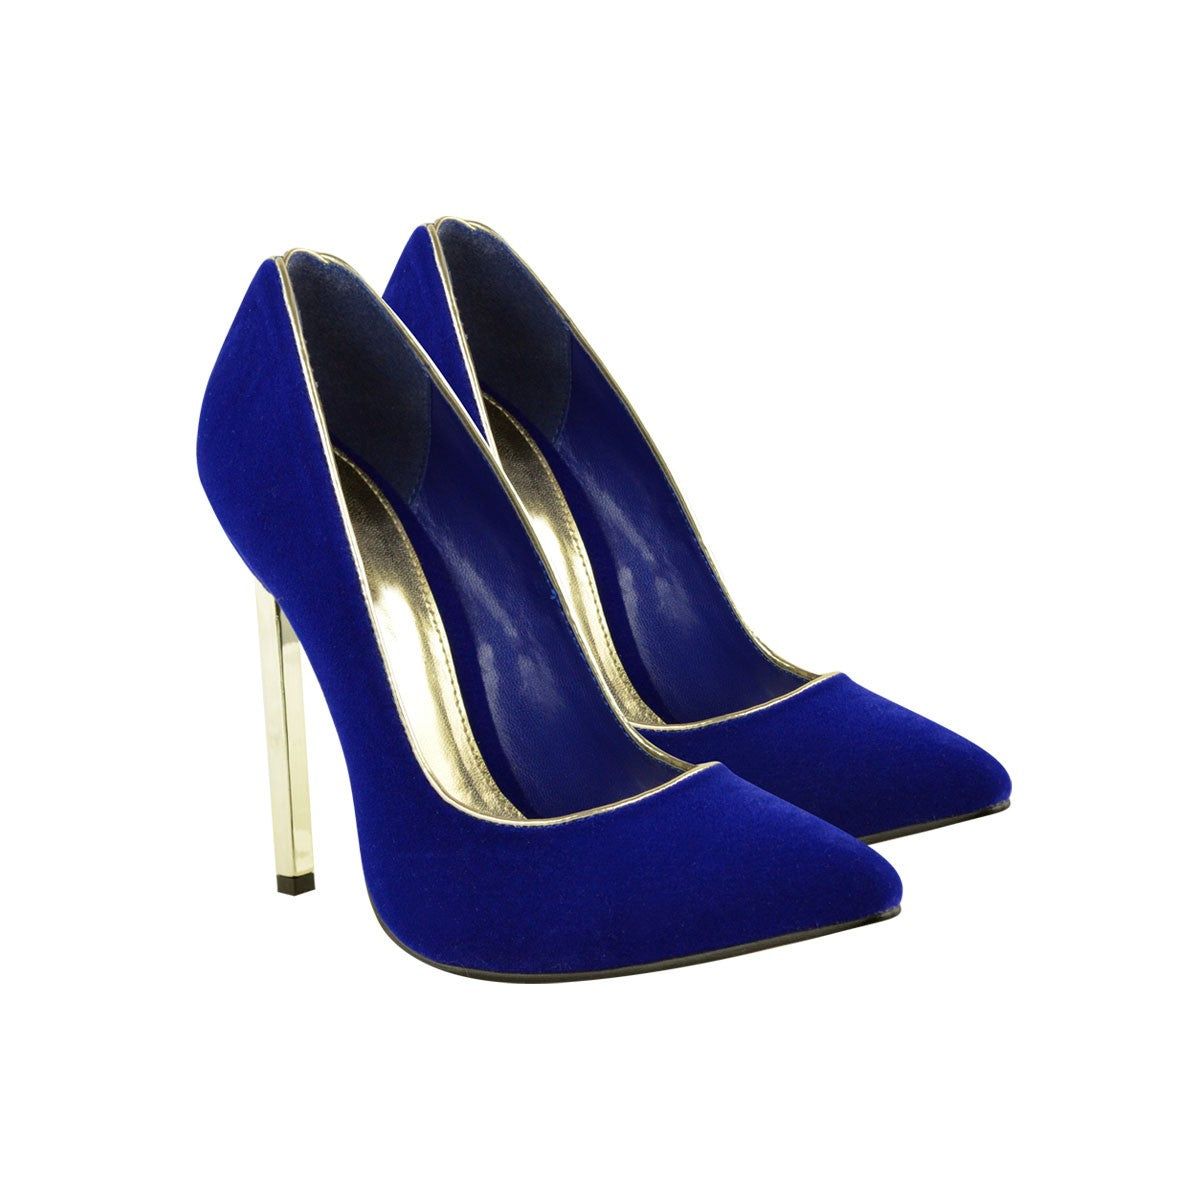 The Classic Stiletto heel by GRACESHIP